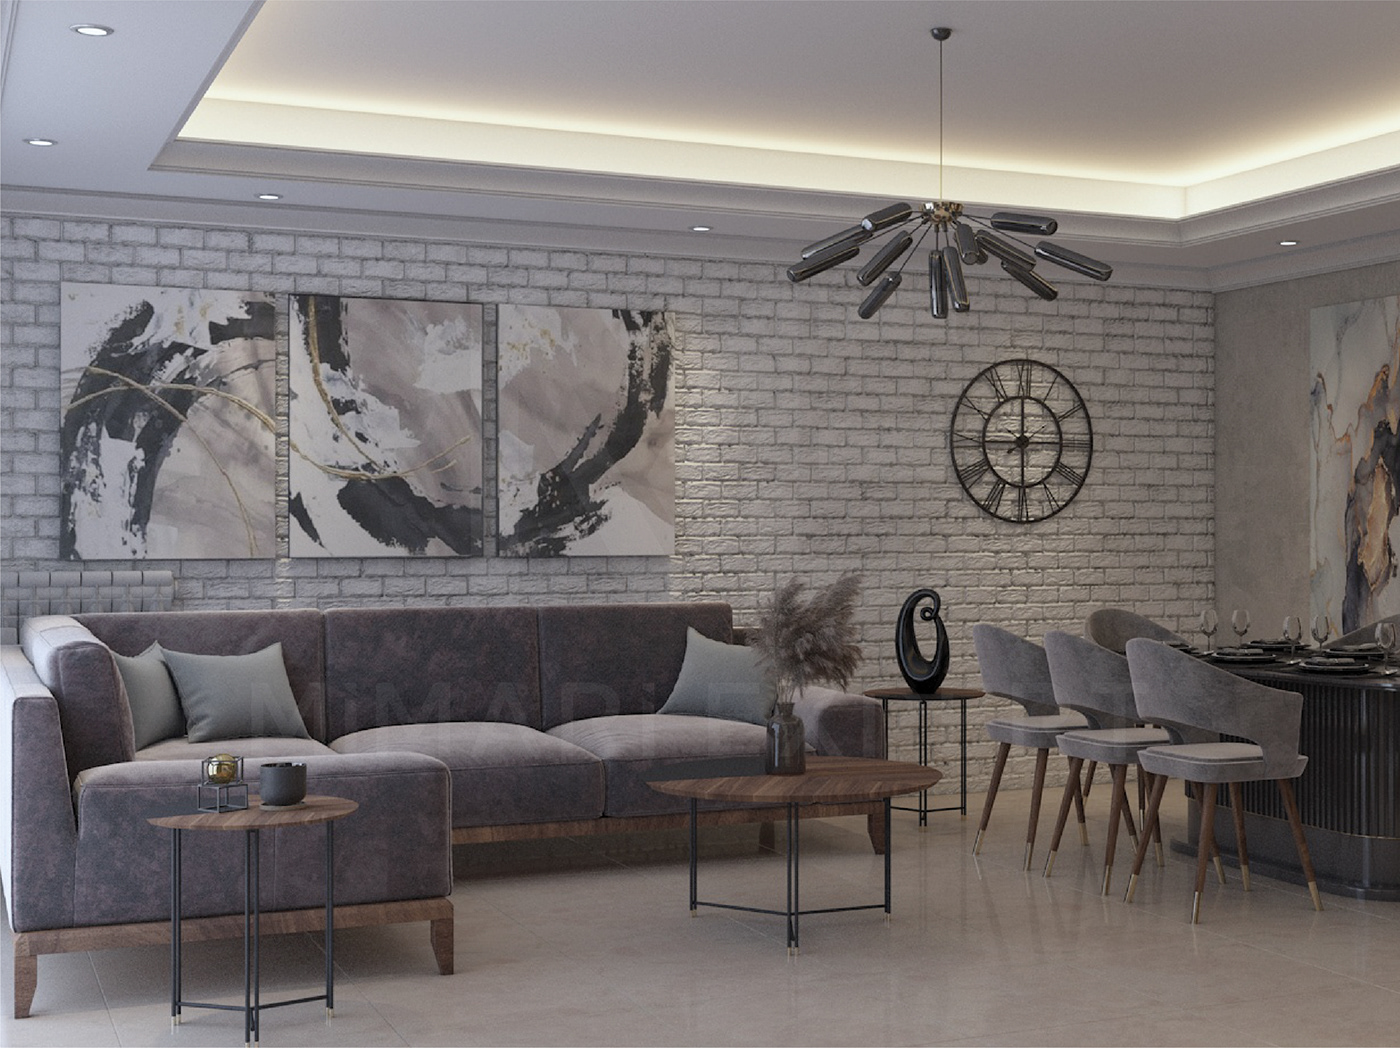 3d design apartment architecture art decorations Engineering  Engineering Projects false ceilings furniture wall paper